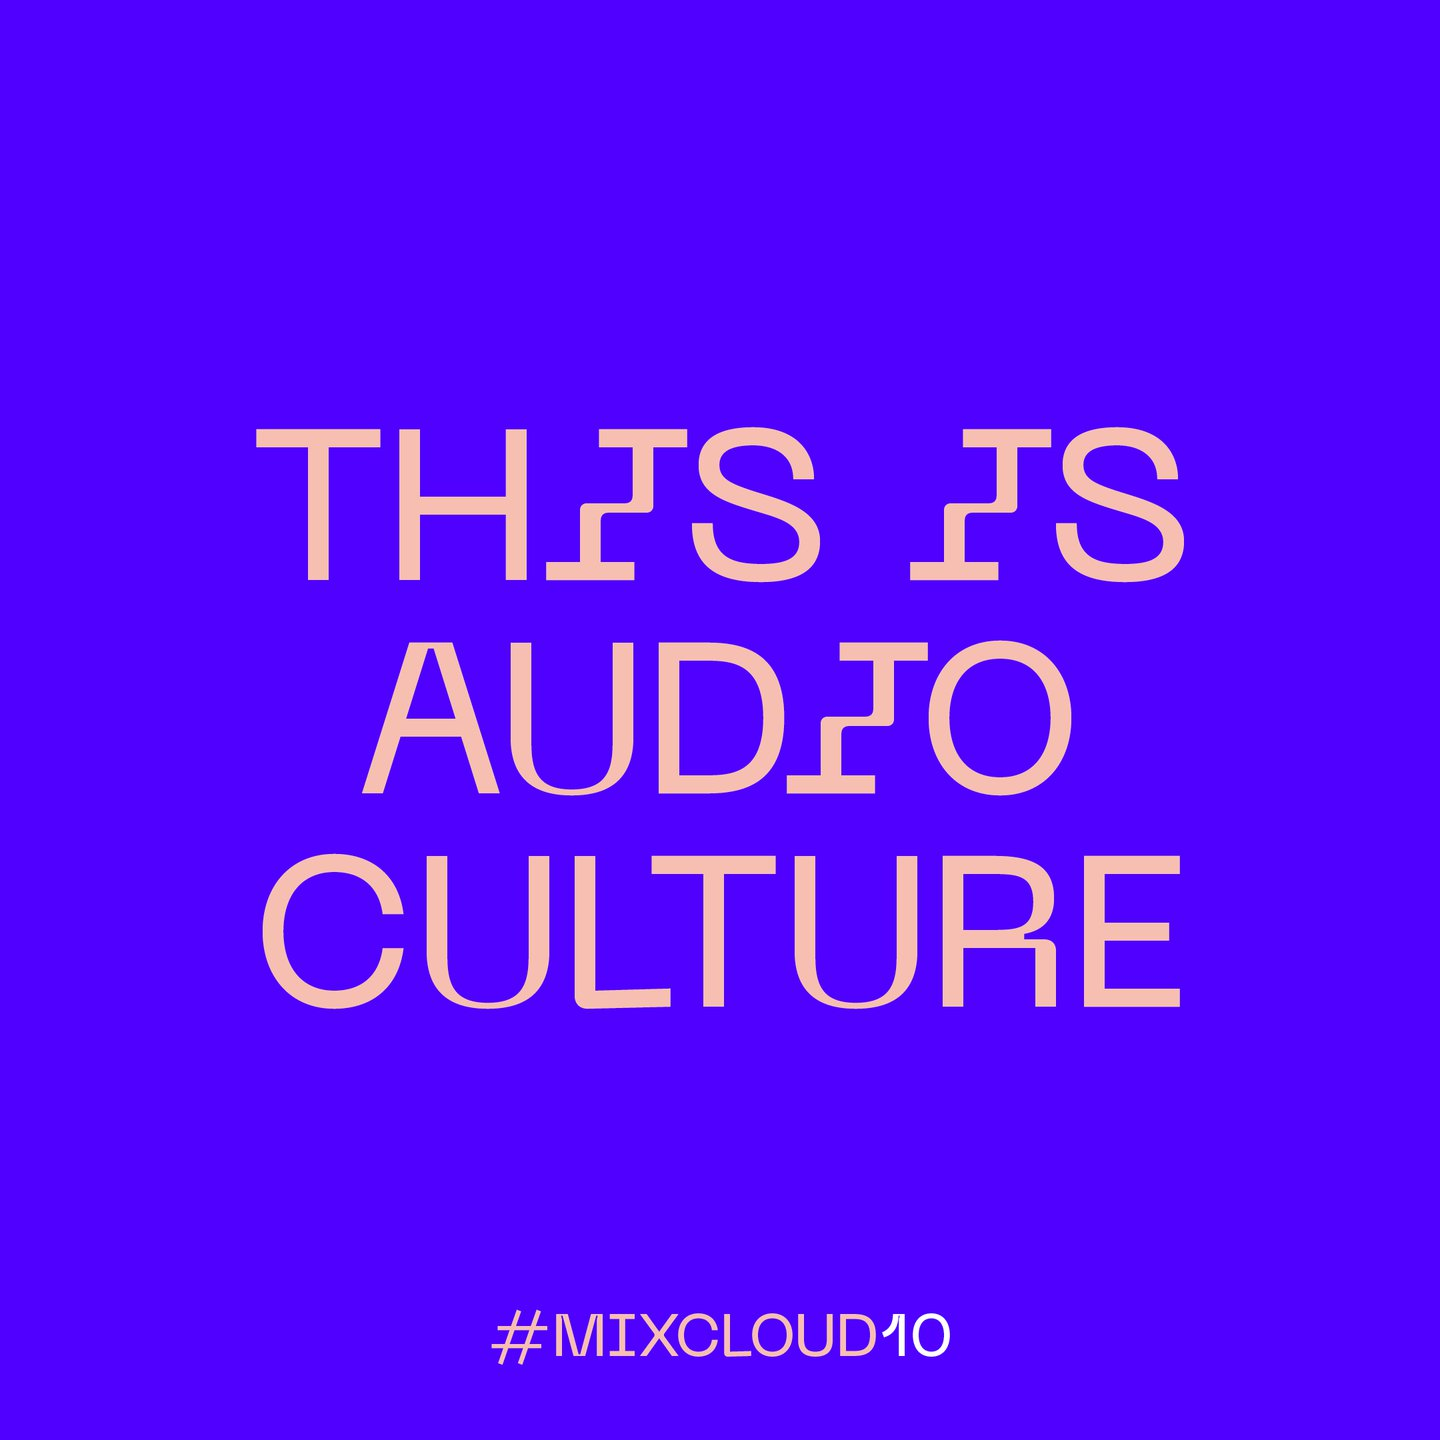 The Mixcloud rebrand by Studio Output visualises the connecting power of music